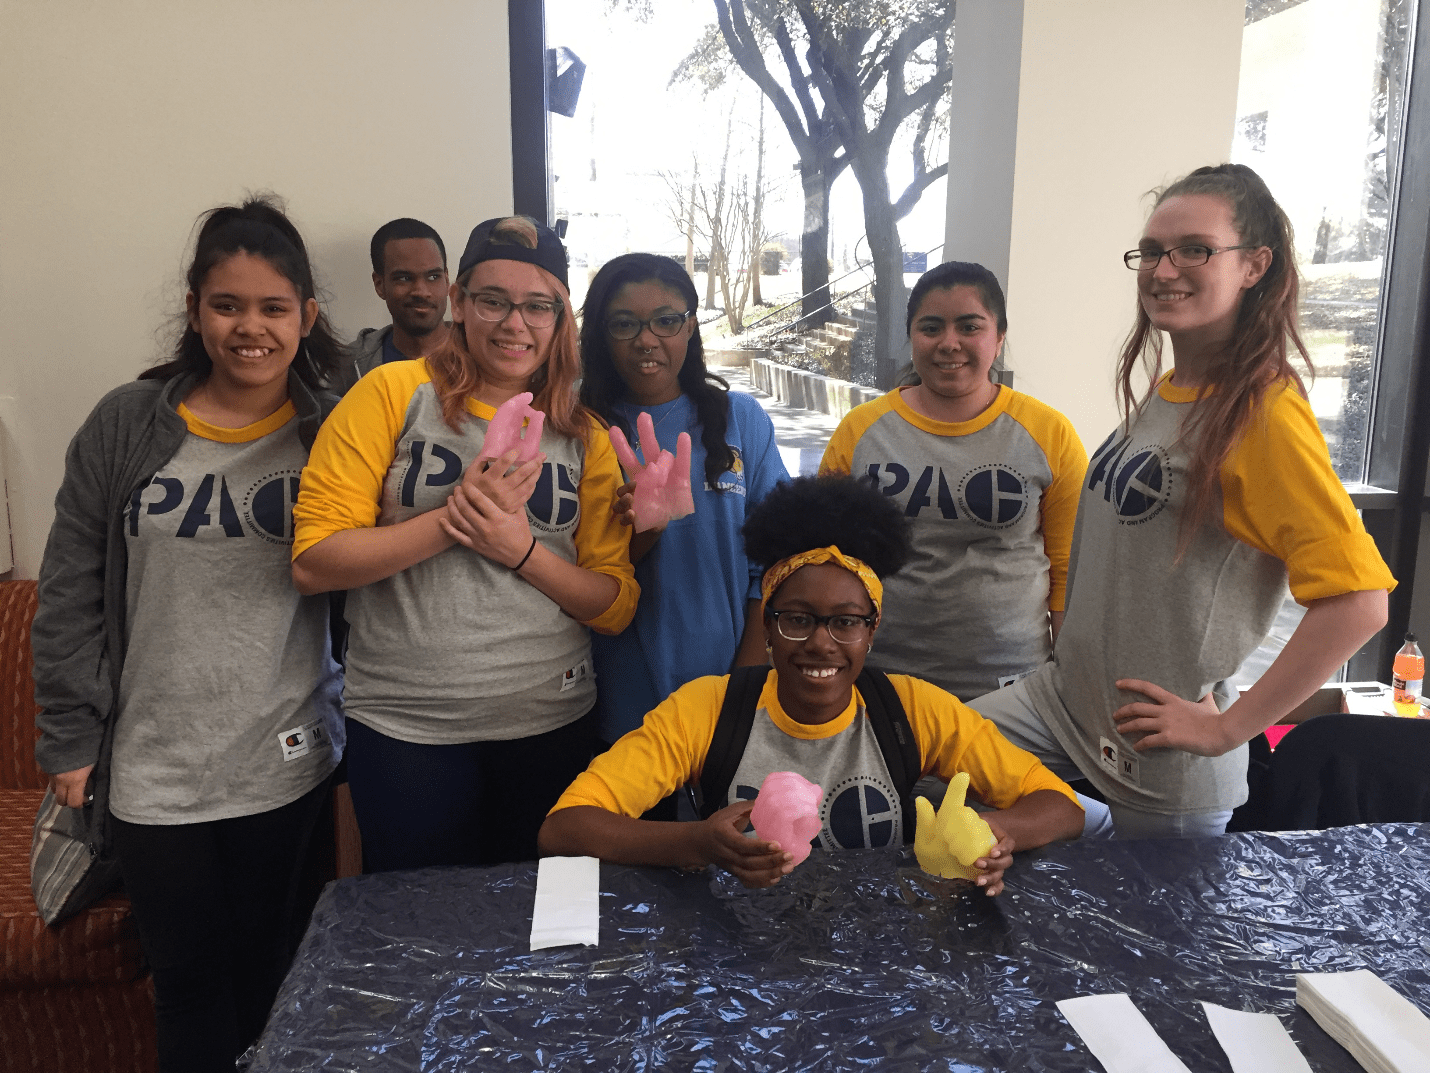 Students pack into PAC's wax hand event